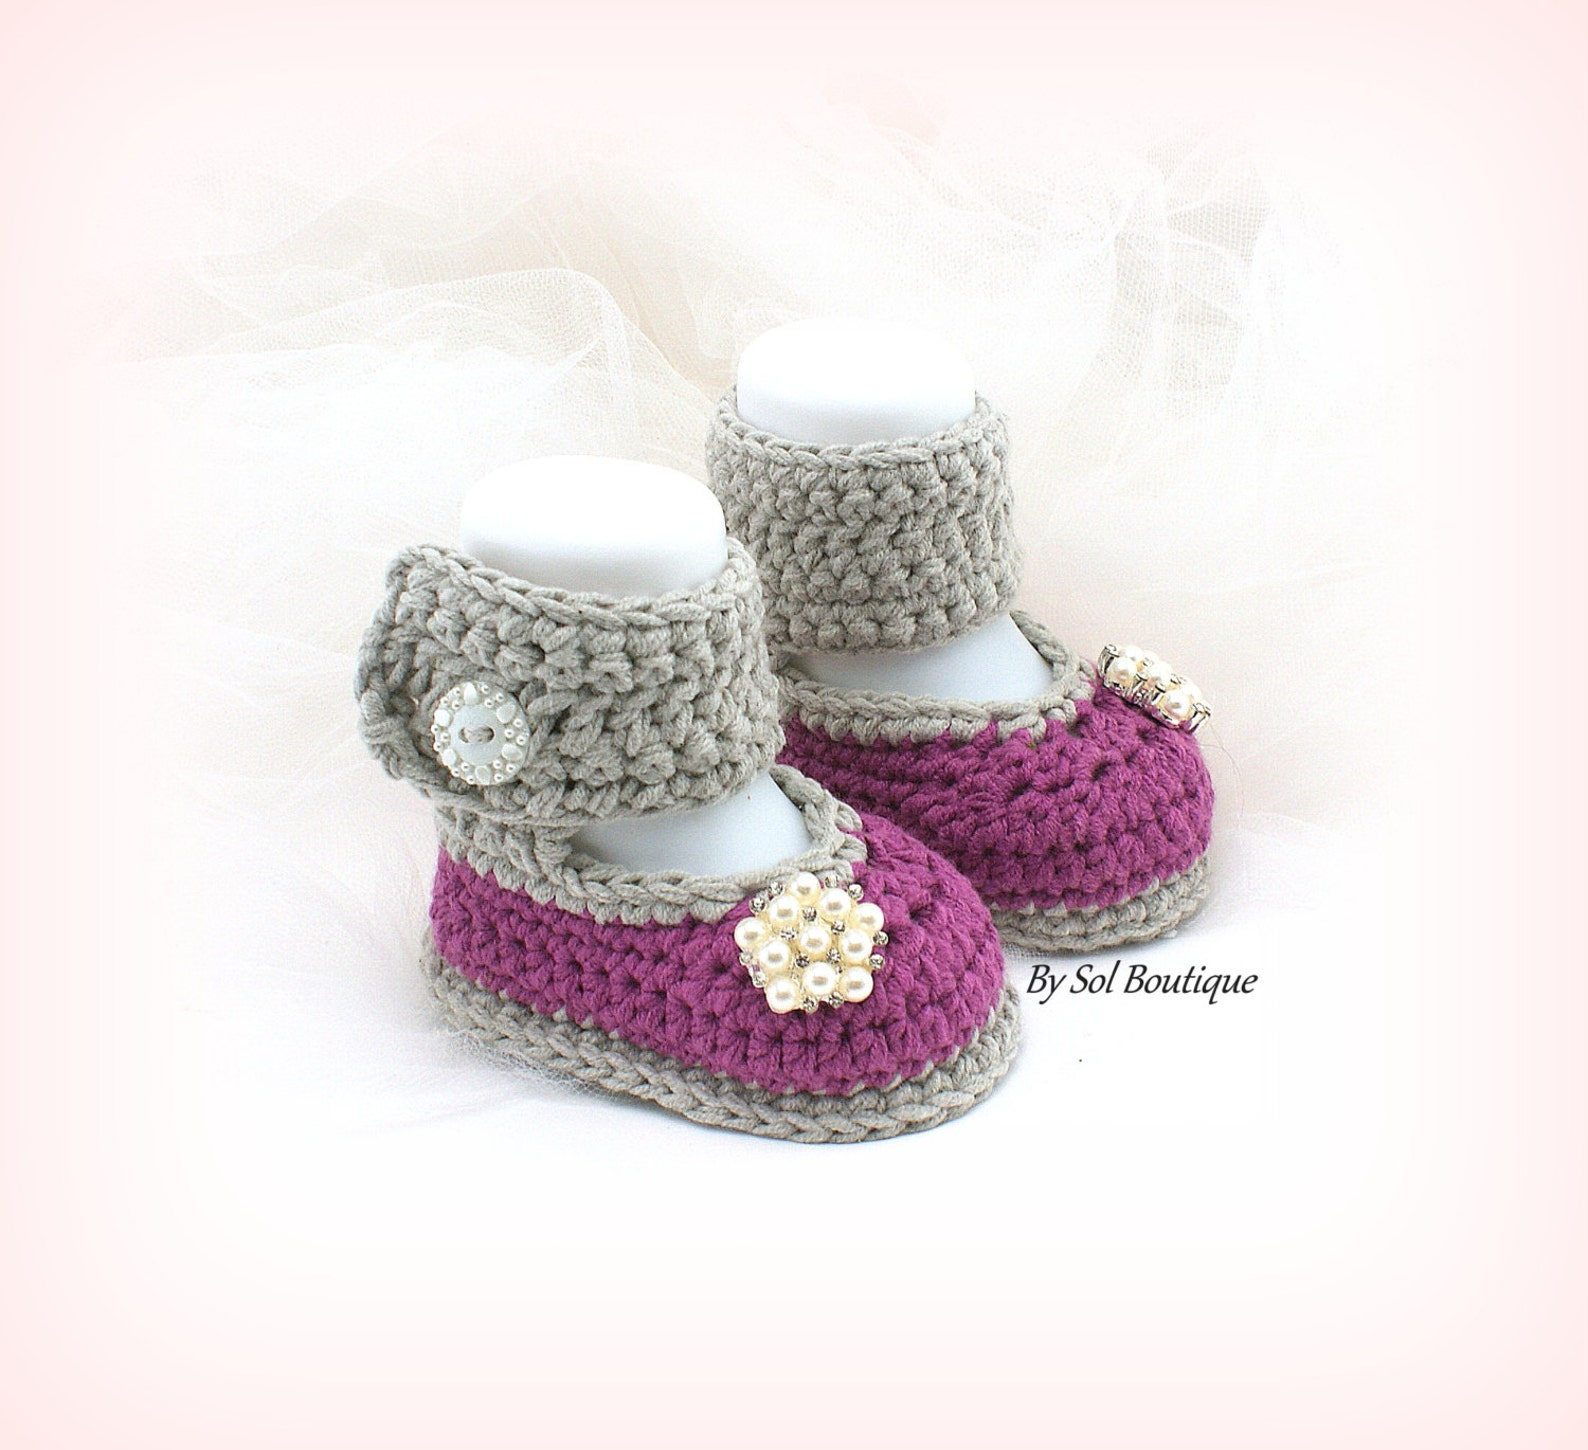 baby shoes,new born shoes,mauve,purple,gray,crochet shoes,photo prop, baby ballet shoes,booties,baby shower,gift for baby, chris